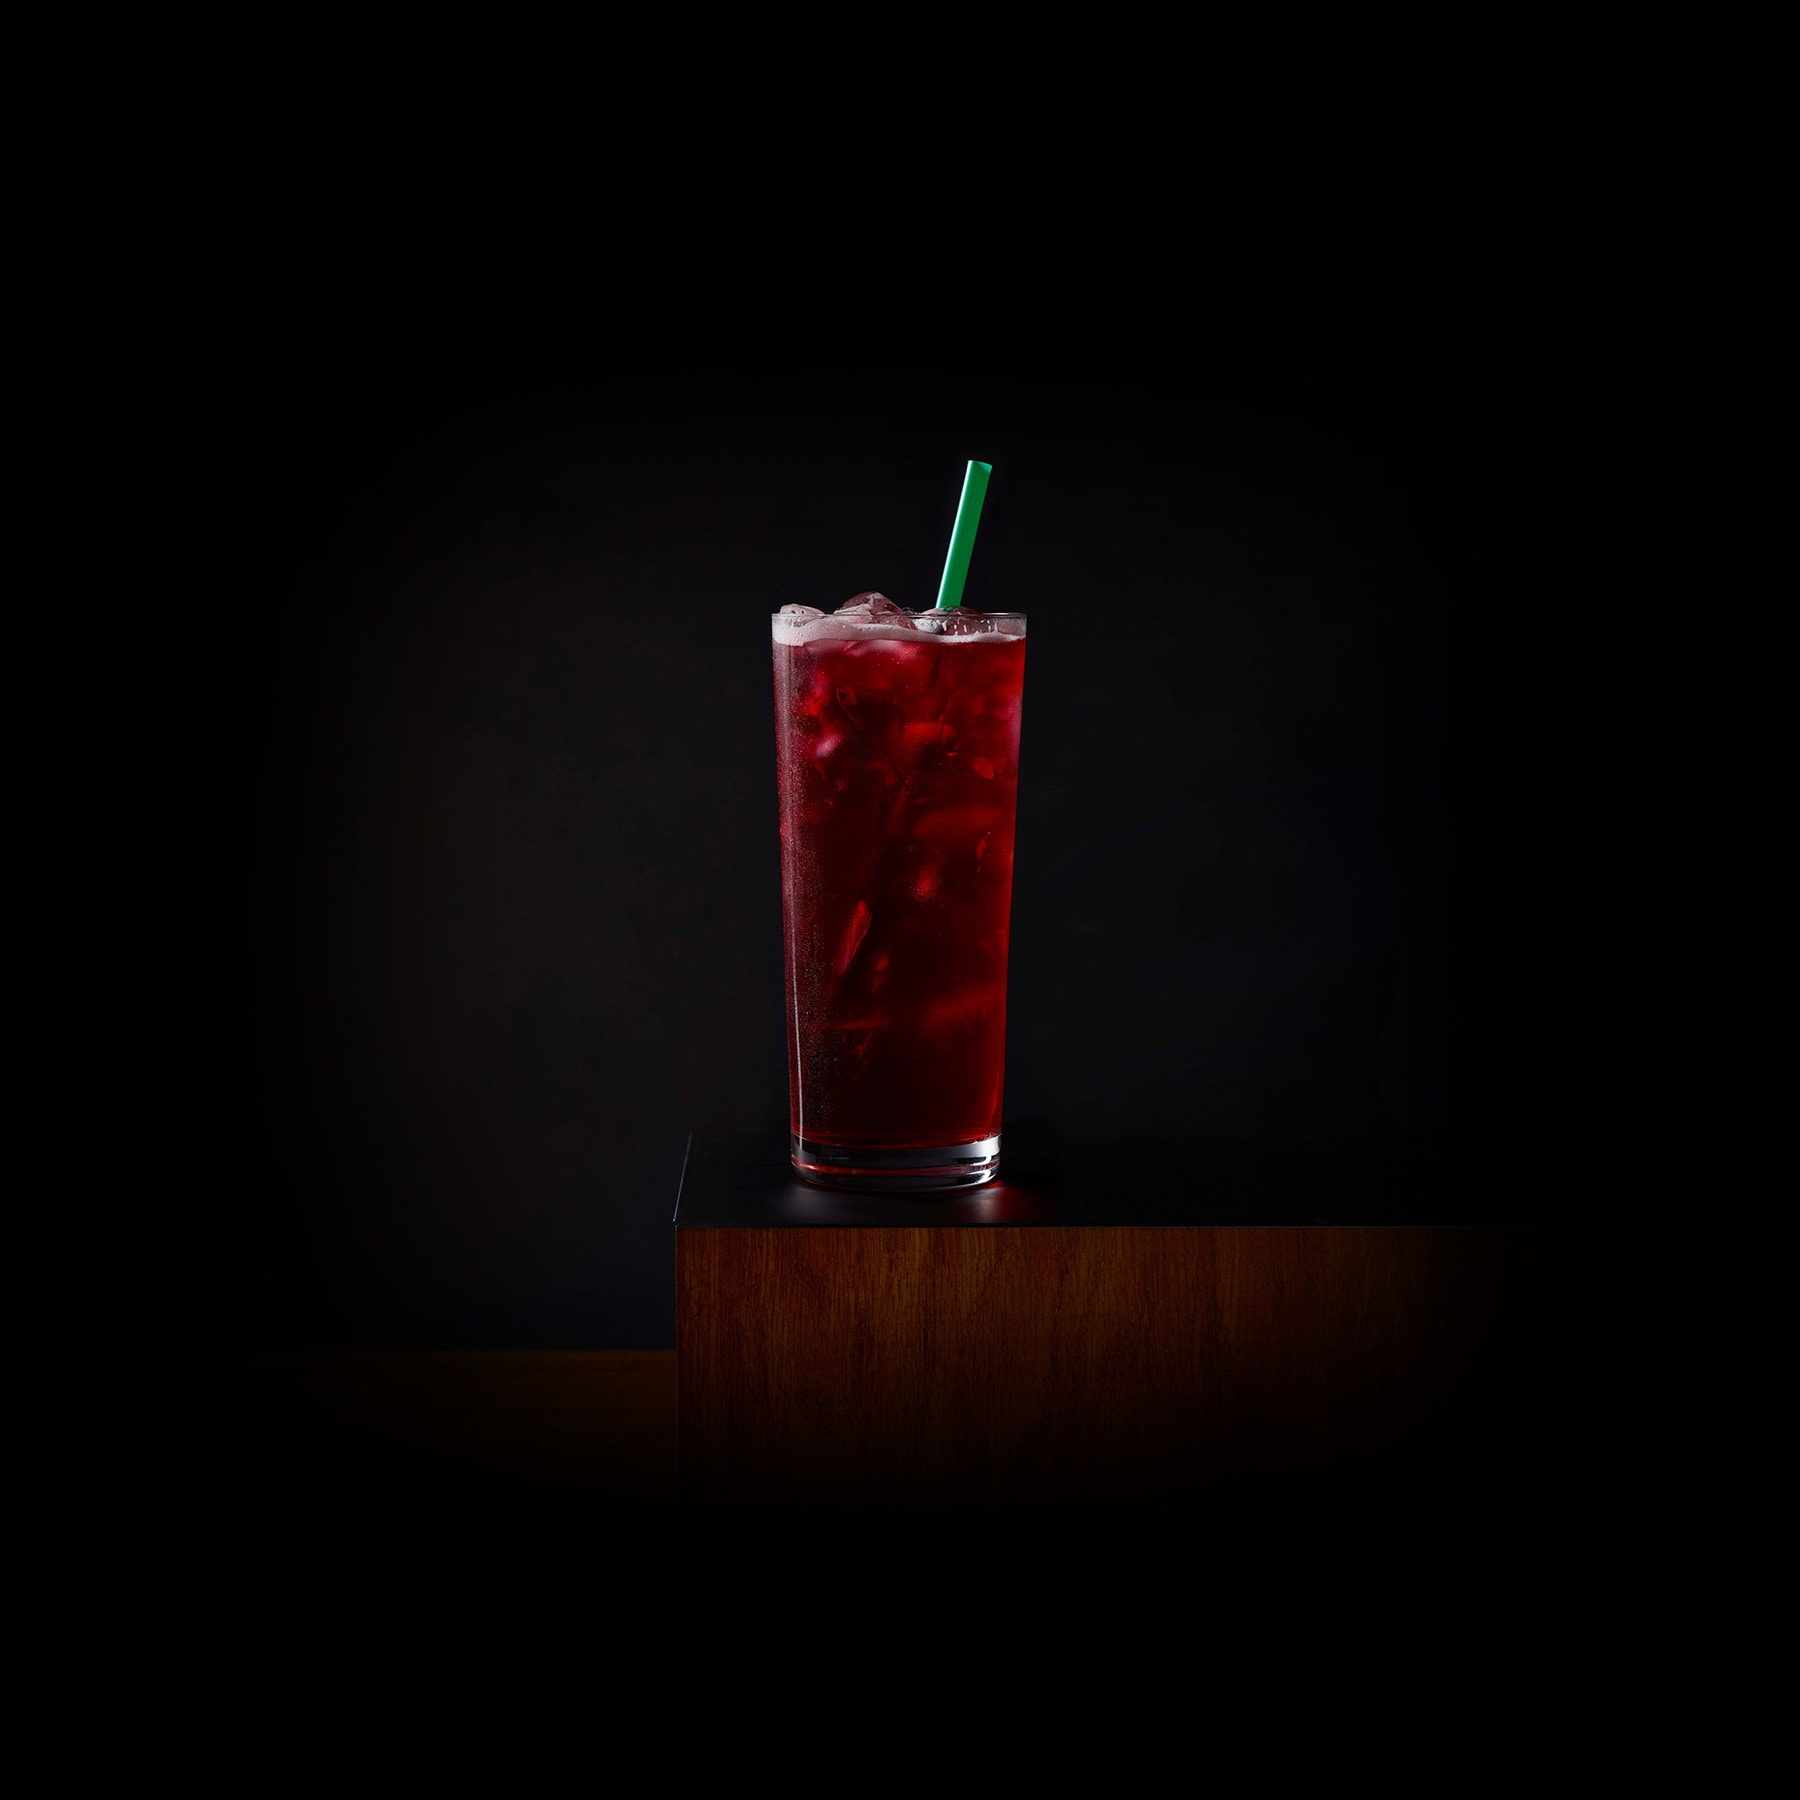 Teavana Shaken Iced Passion Tango Tea Starbucks Coffee Company